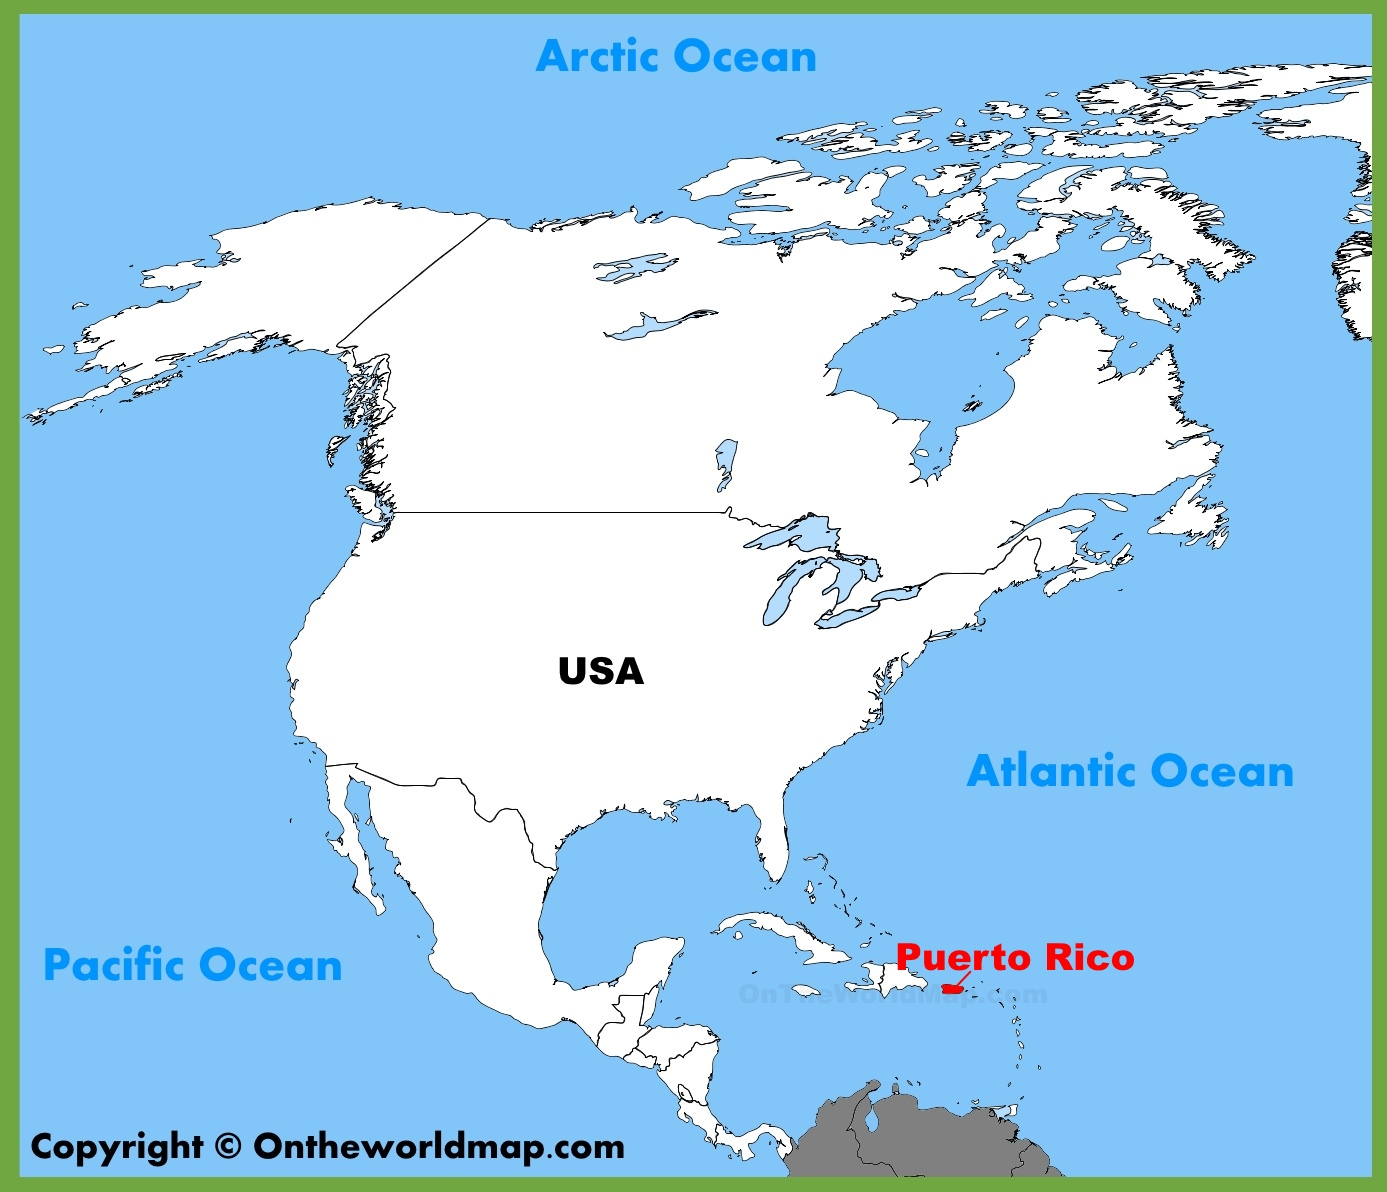 Puerto Rico location on the North America map